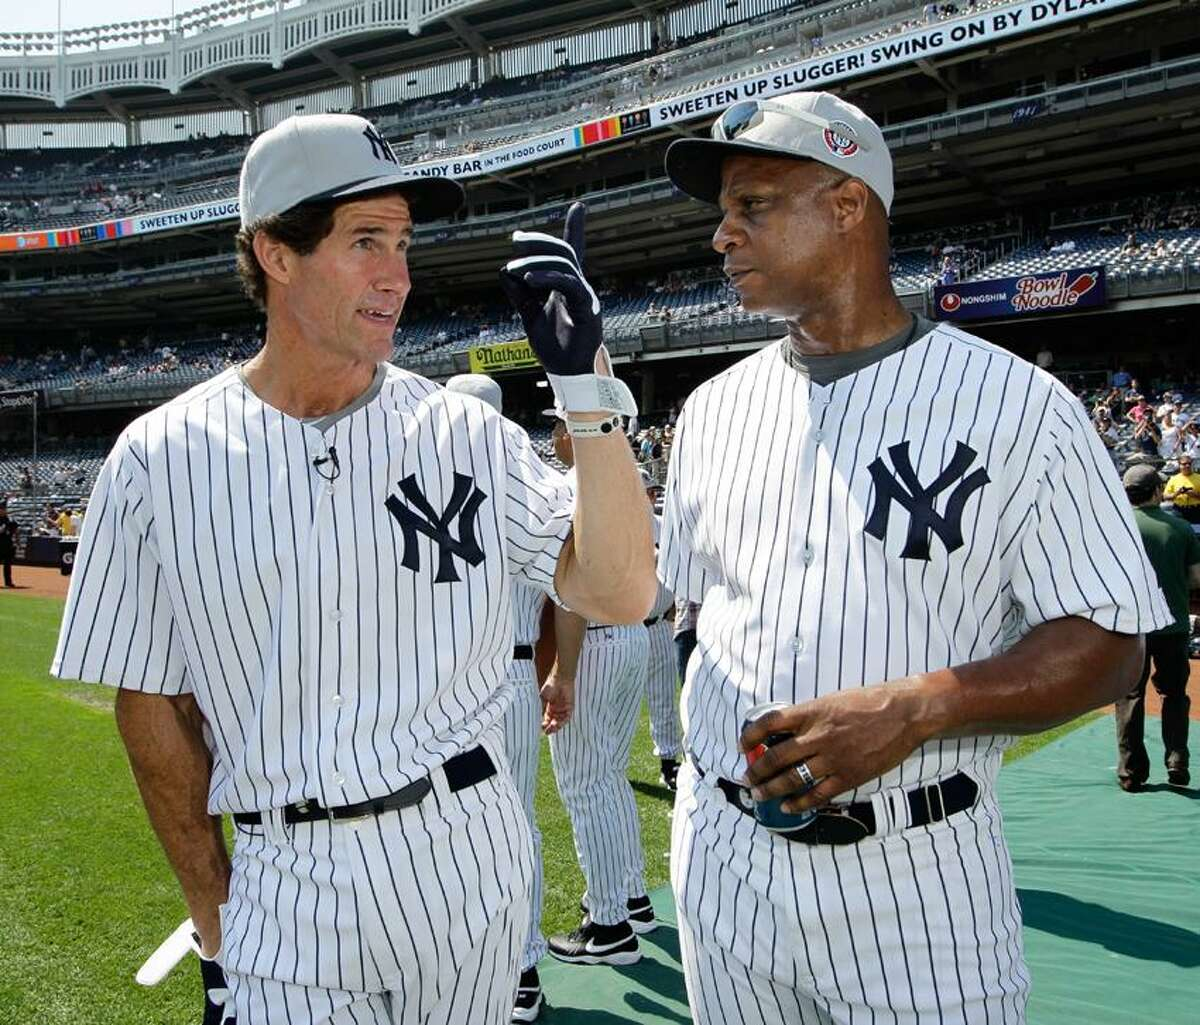 Former New York Yankees outfielders Paul O'Neill, left, and Darryl Strawberry talk on the field during Yankees Old Timers Day at Yankee Stadium in New York, Sunday, July 1, 2012. (AP Photo/Kathy Willens)